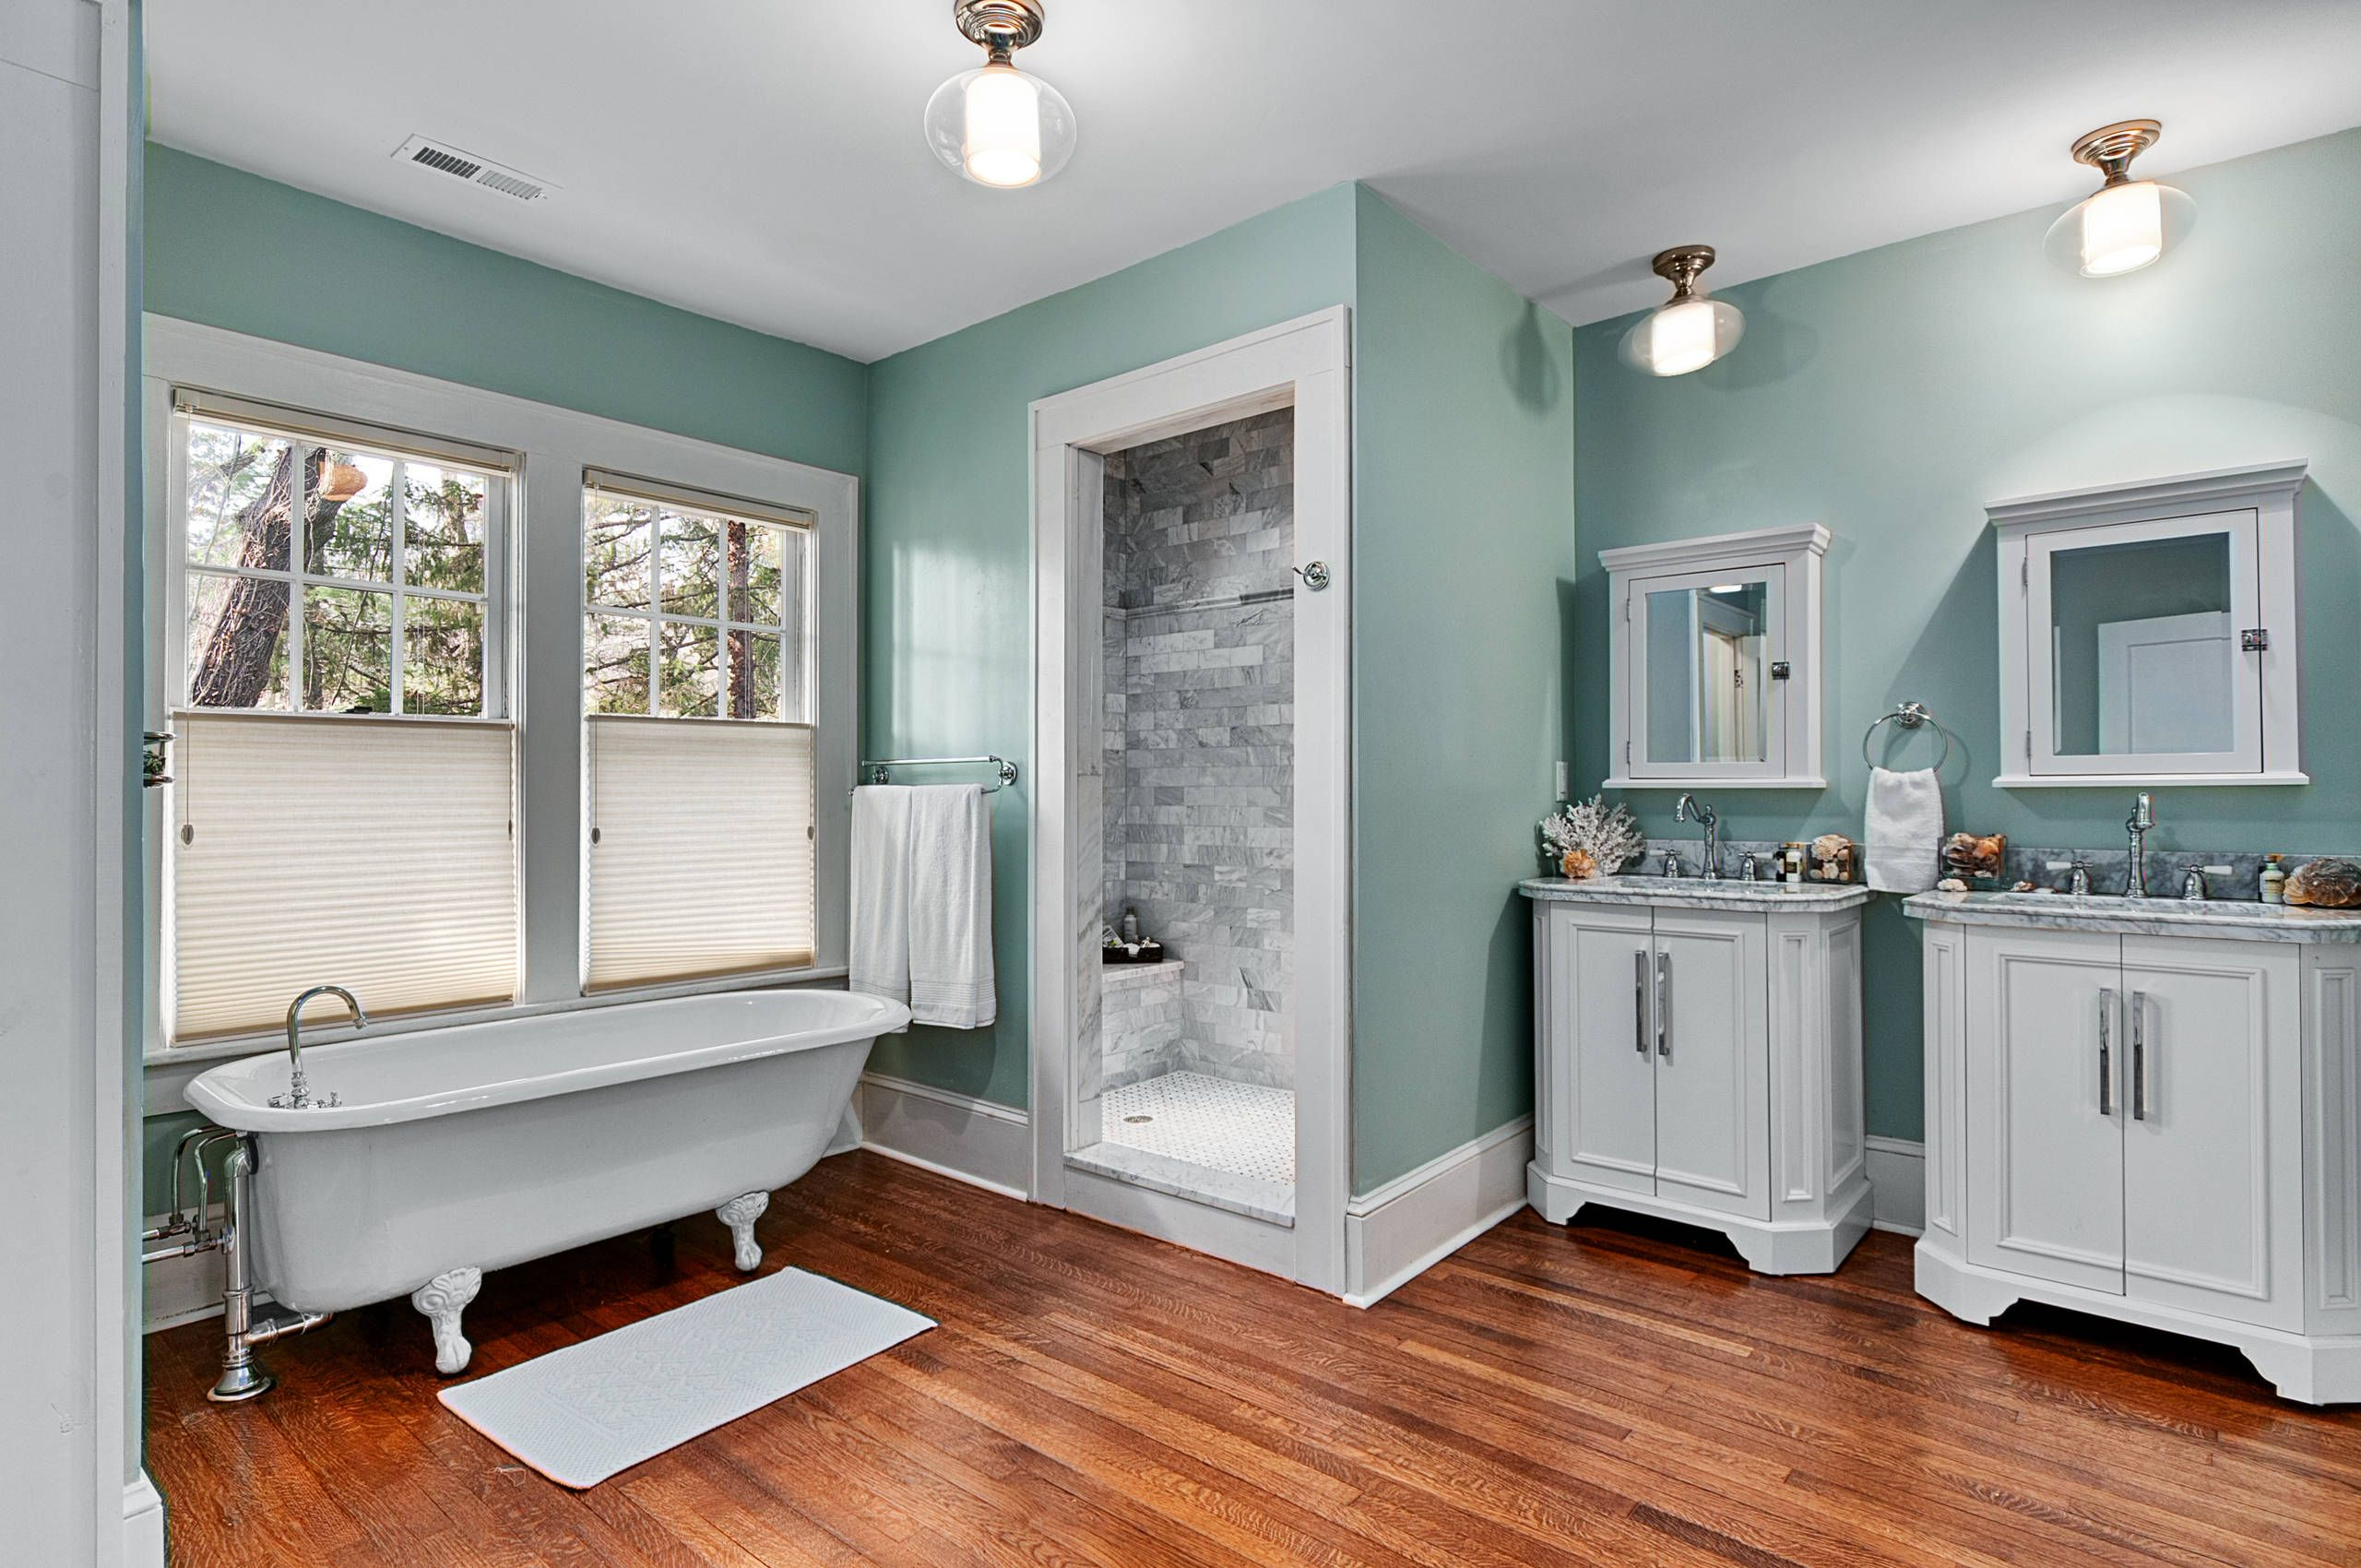 Master bathroom paint color ideas - Paint Colors For Bathrooms With Dark Cabinets Yes Yes Go